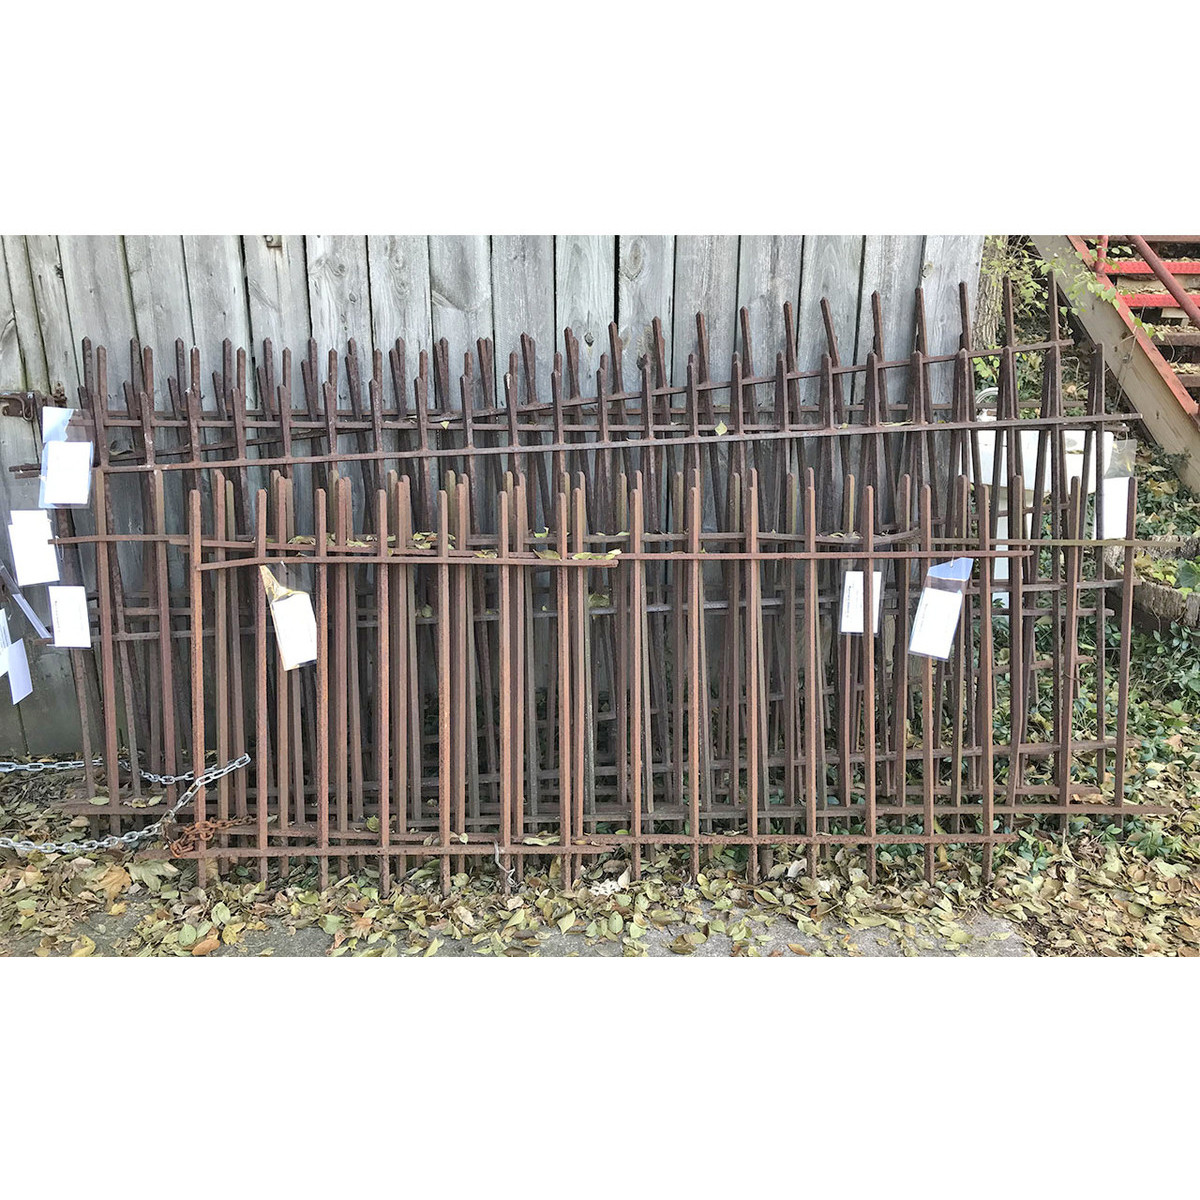 S17076A - Antique Wrought Iron Fencing